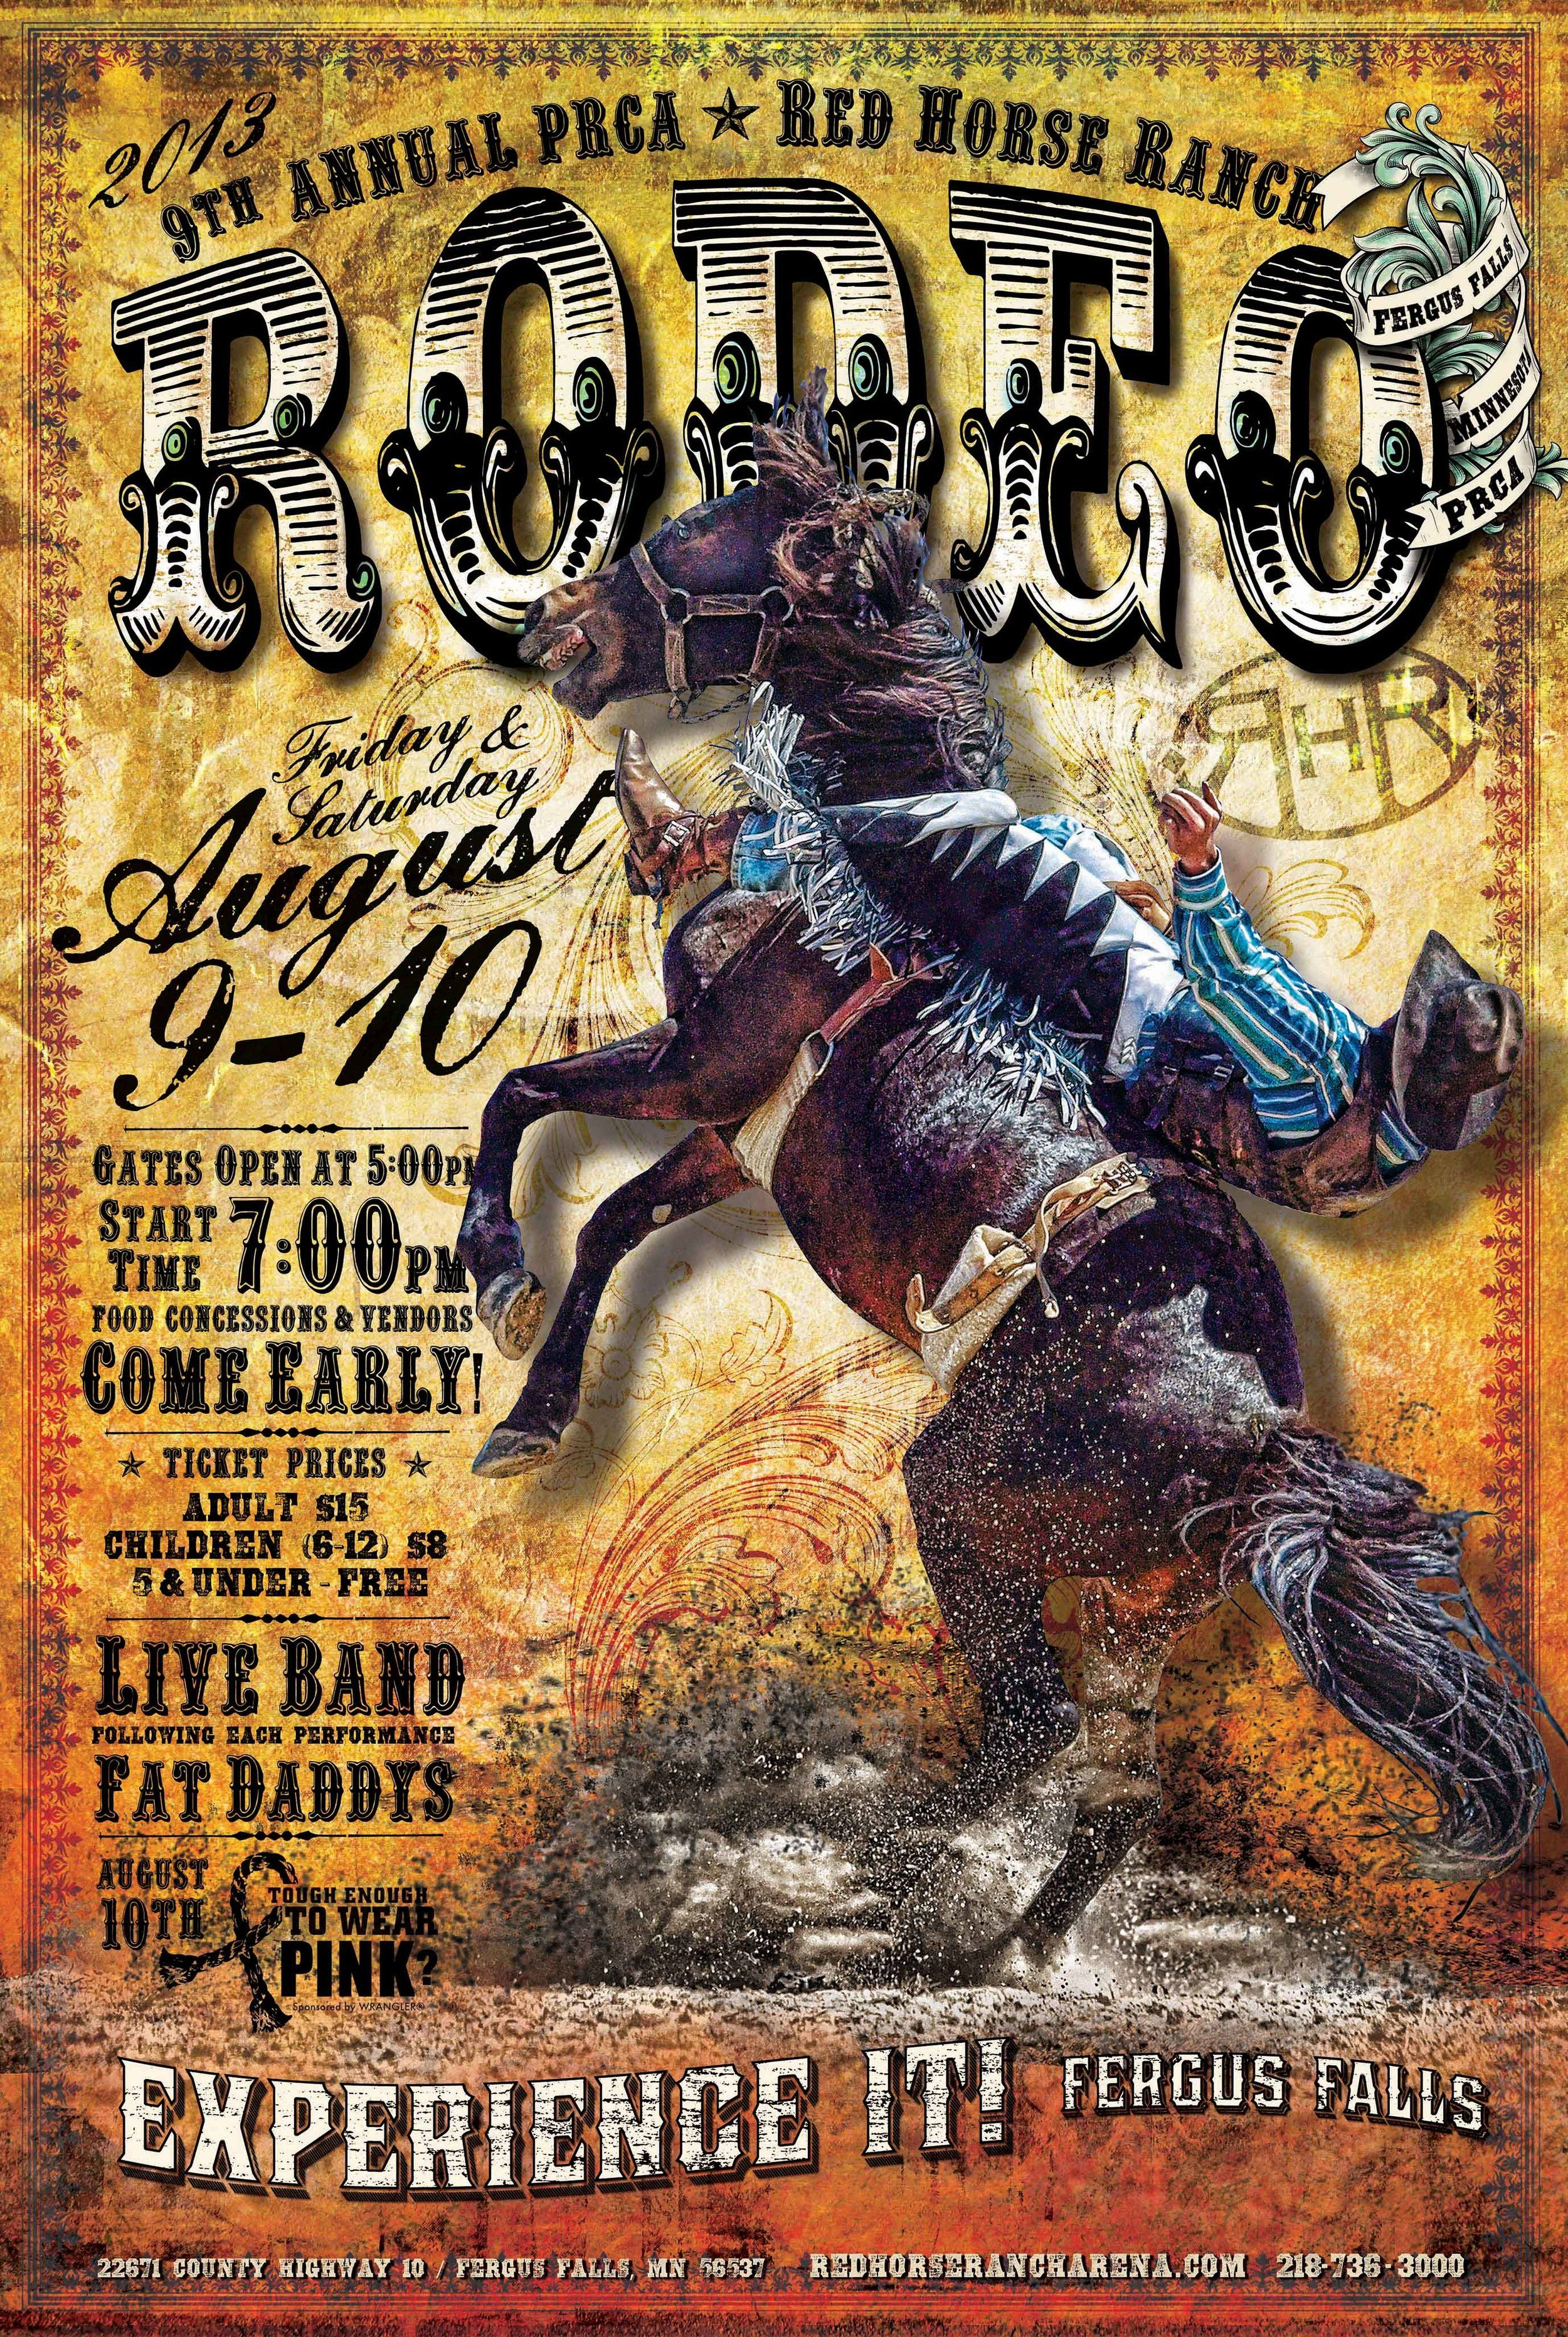 2013 red horse ranch rodeo poster 18